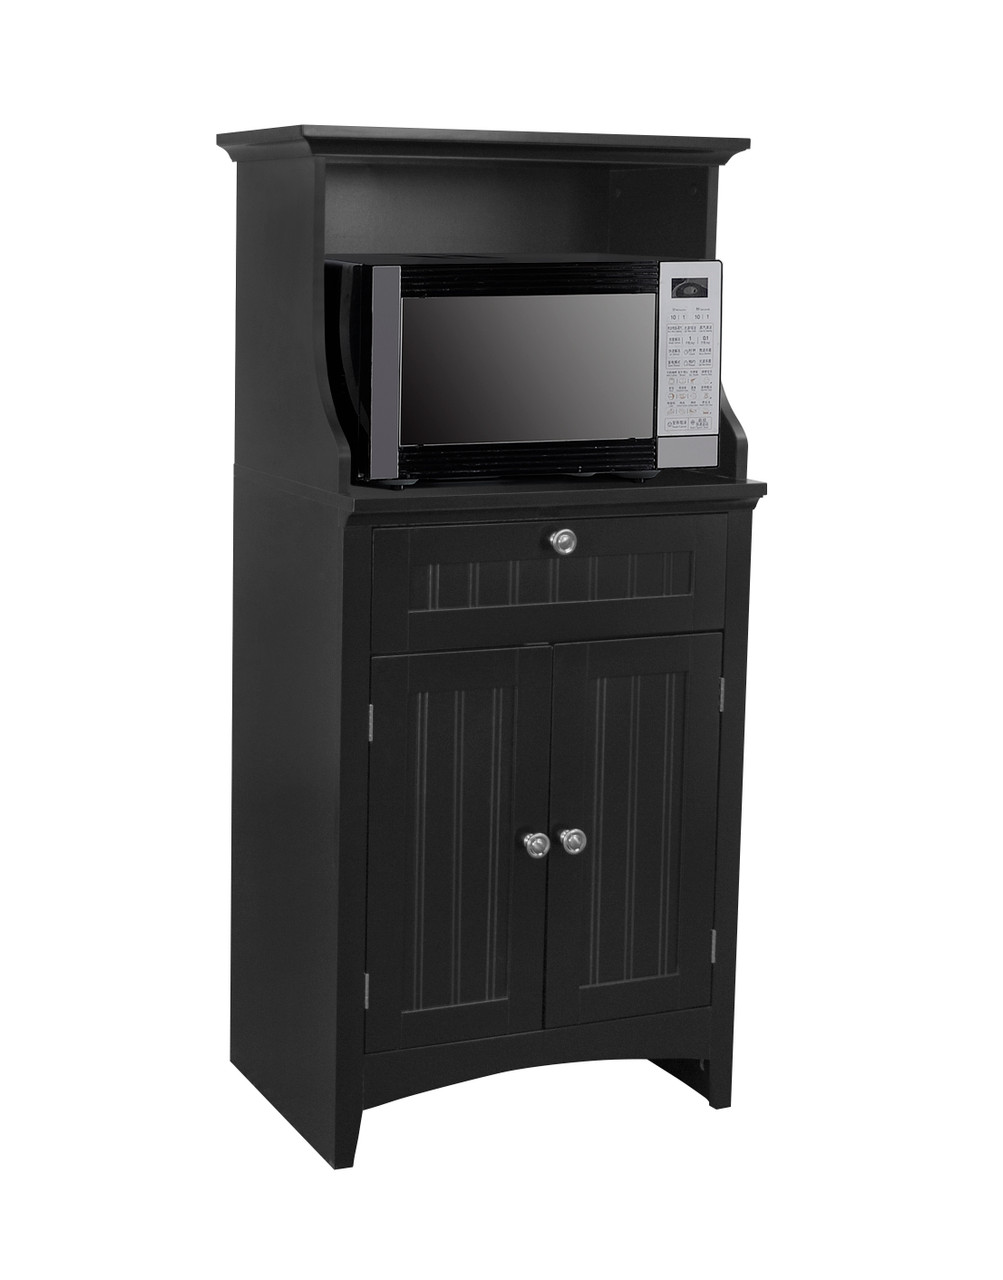 os home and office microwave coffee maker utility cabinet in black